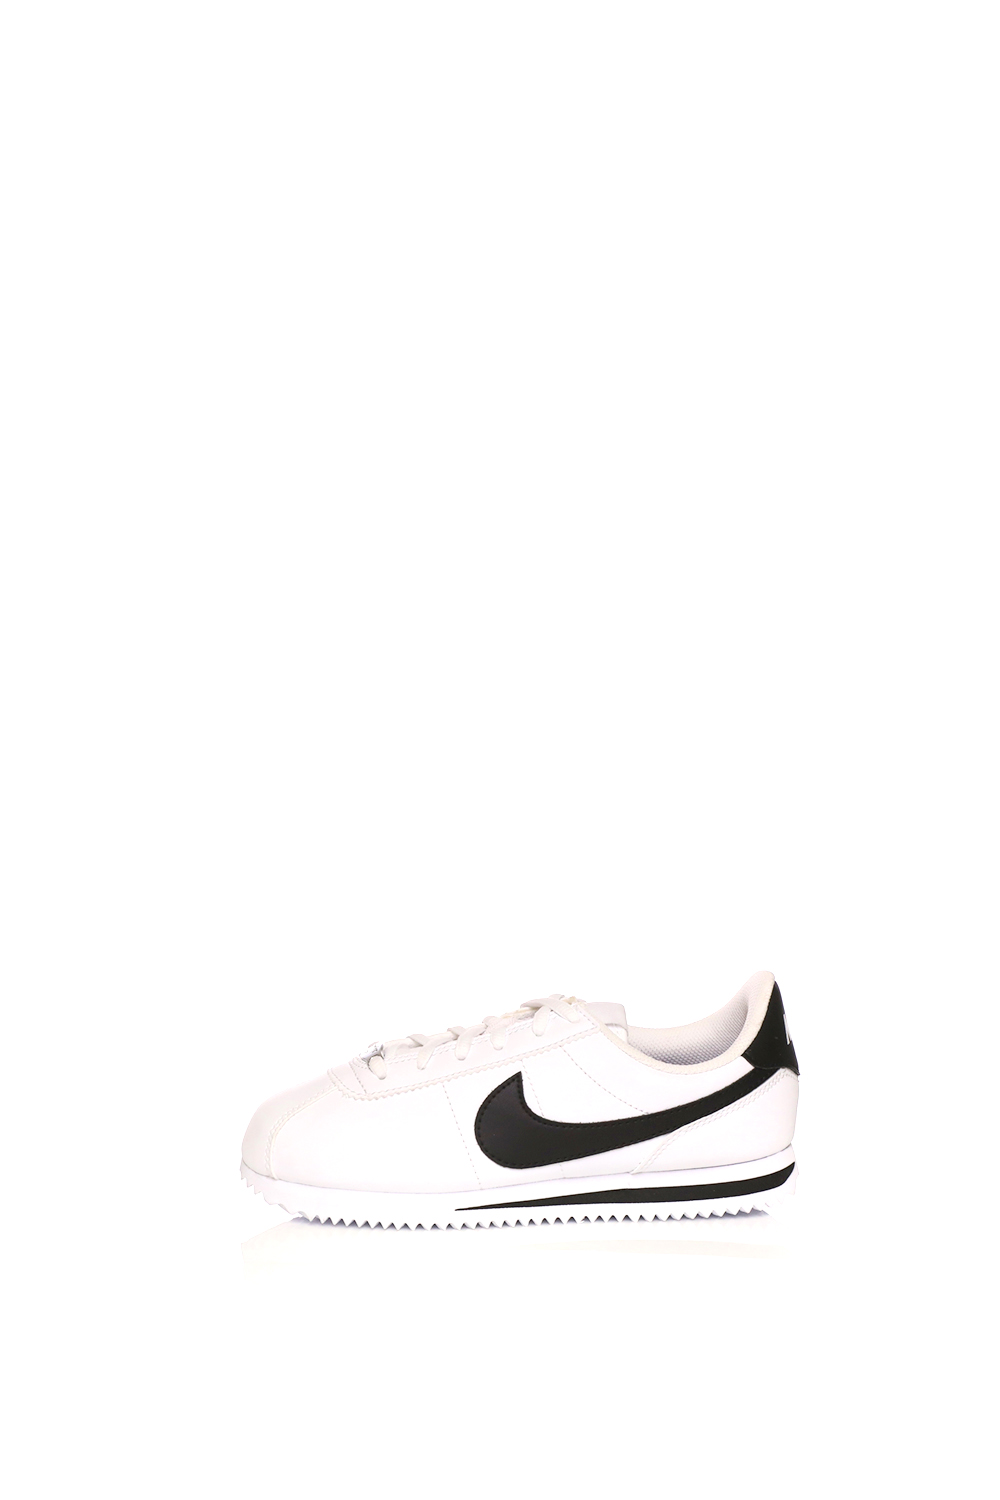 NIKE - Παιδικά παπούτσια CORTEZ BASIC SL (GS) λευκά - Roe Shoes ... 013b0d229ee